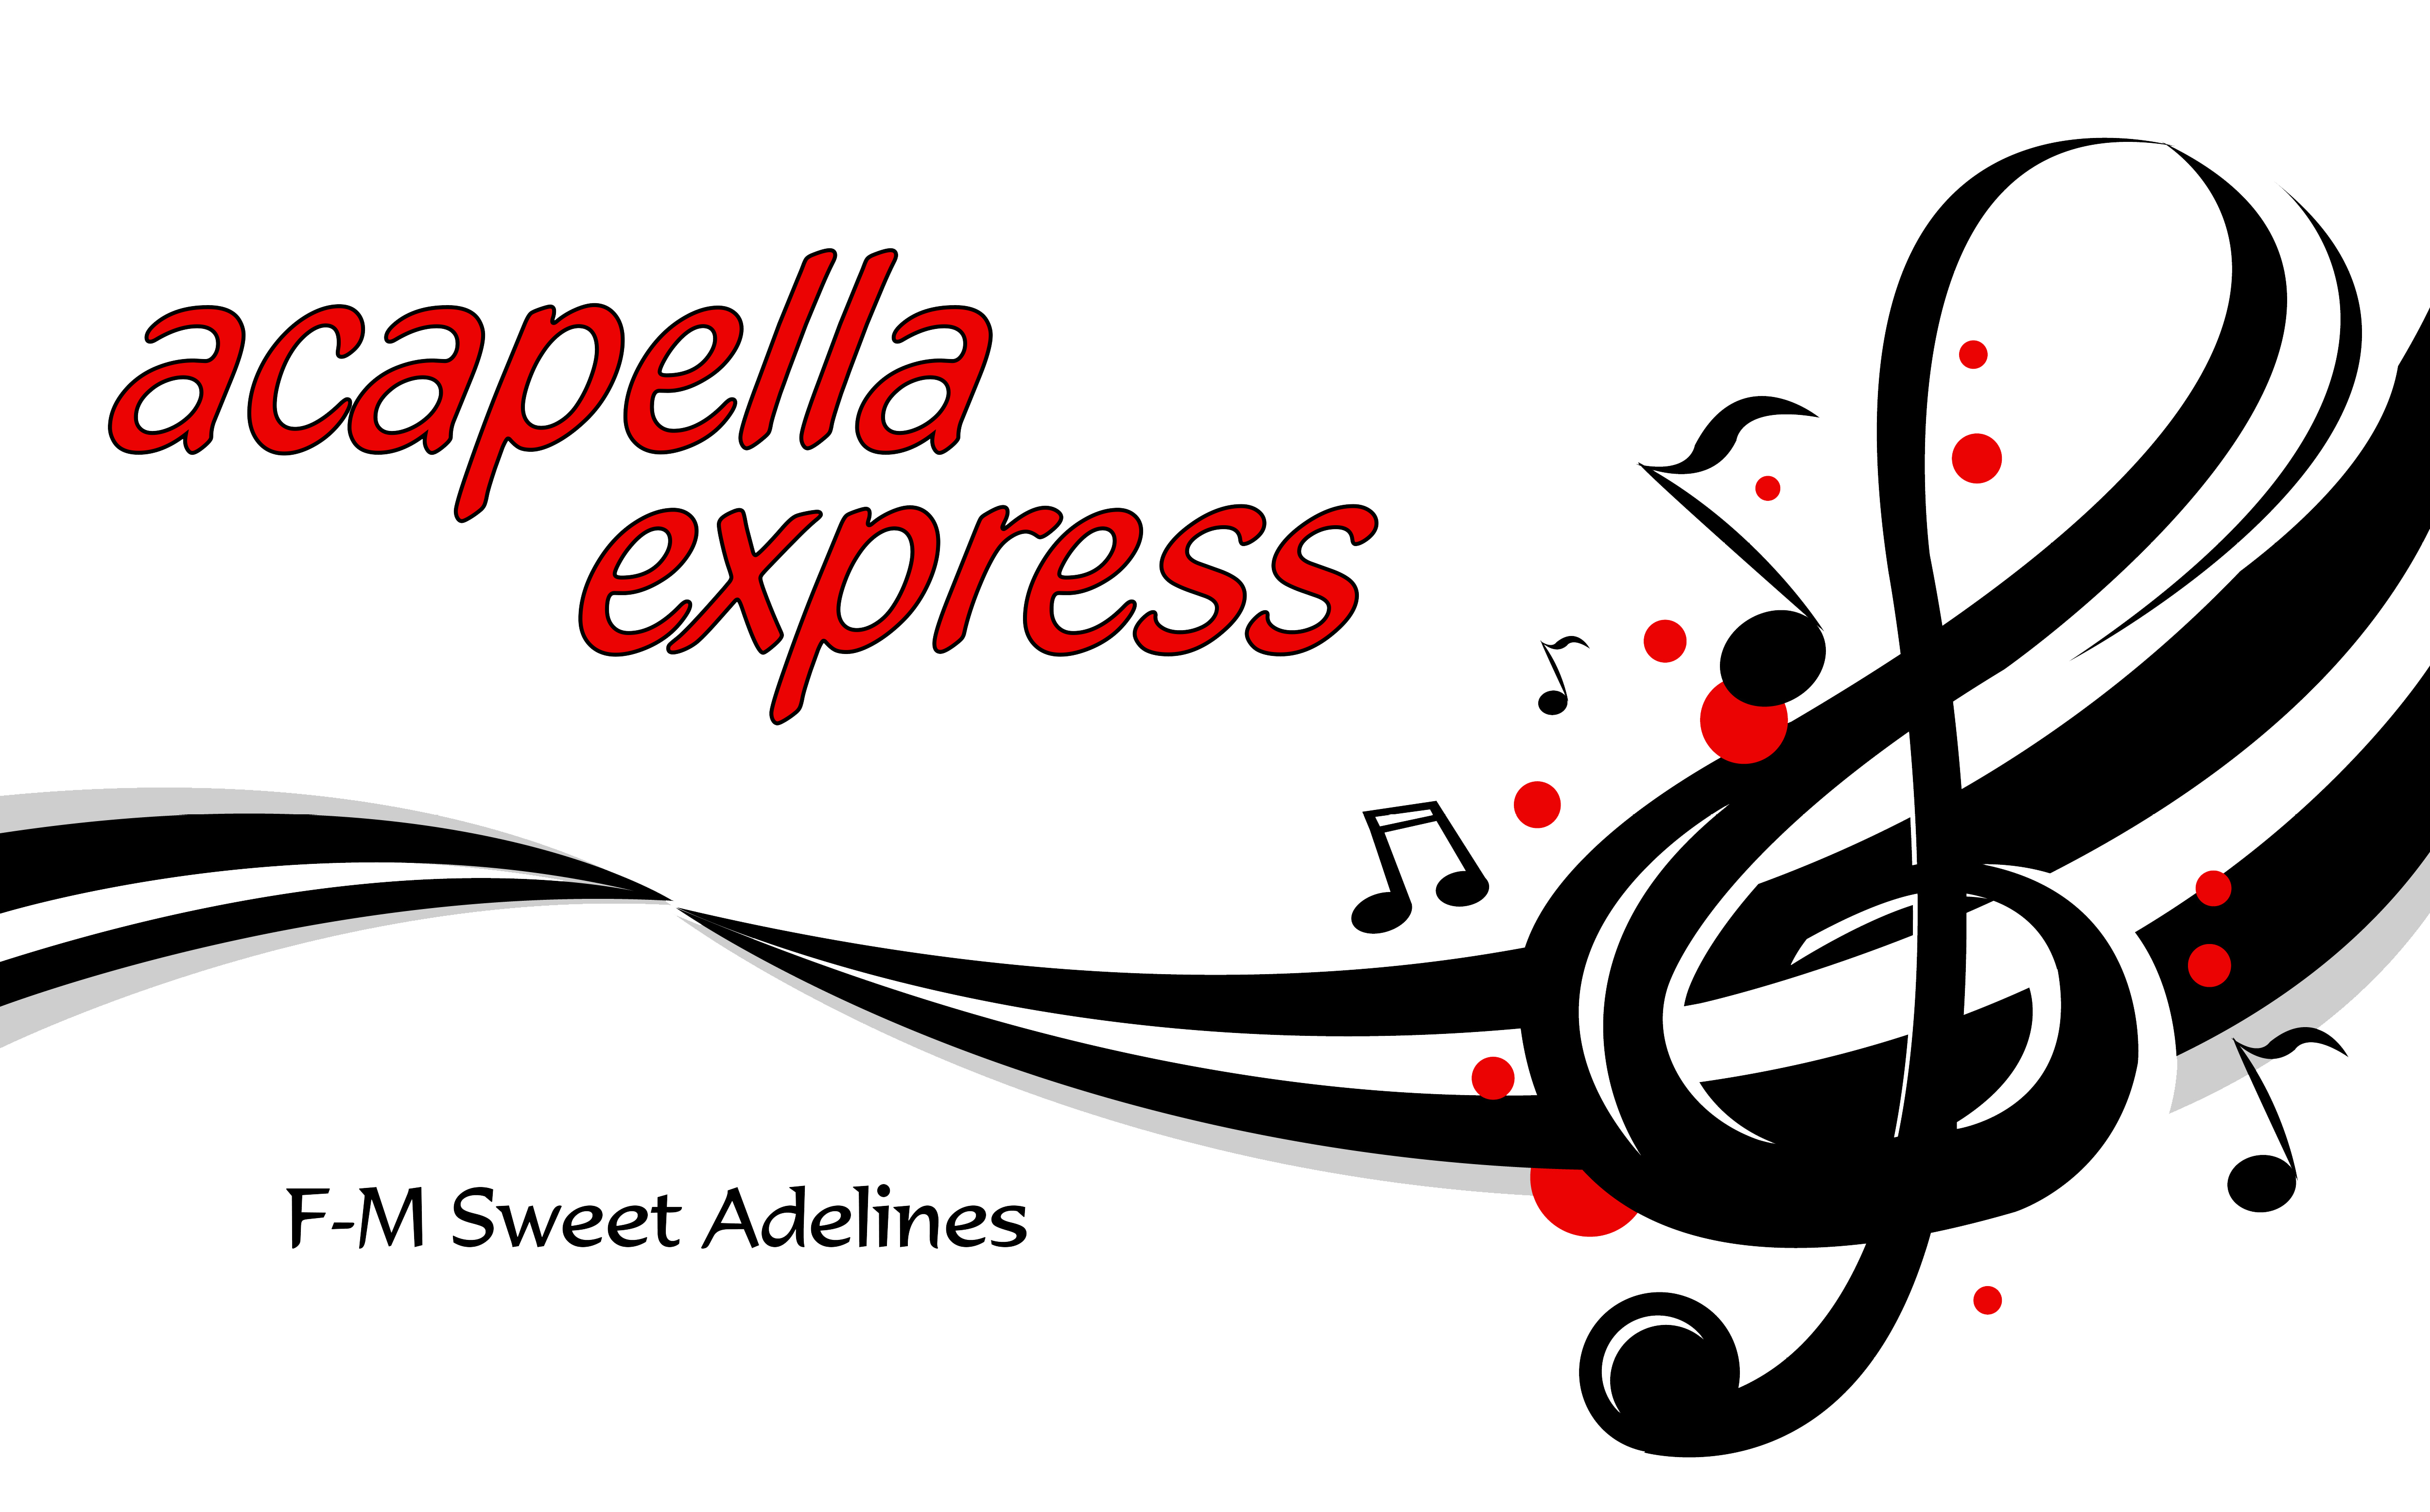 Acapella Express